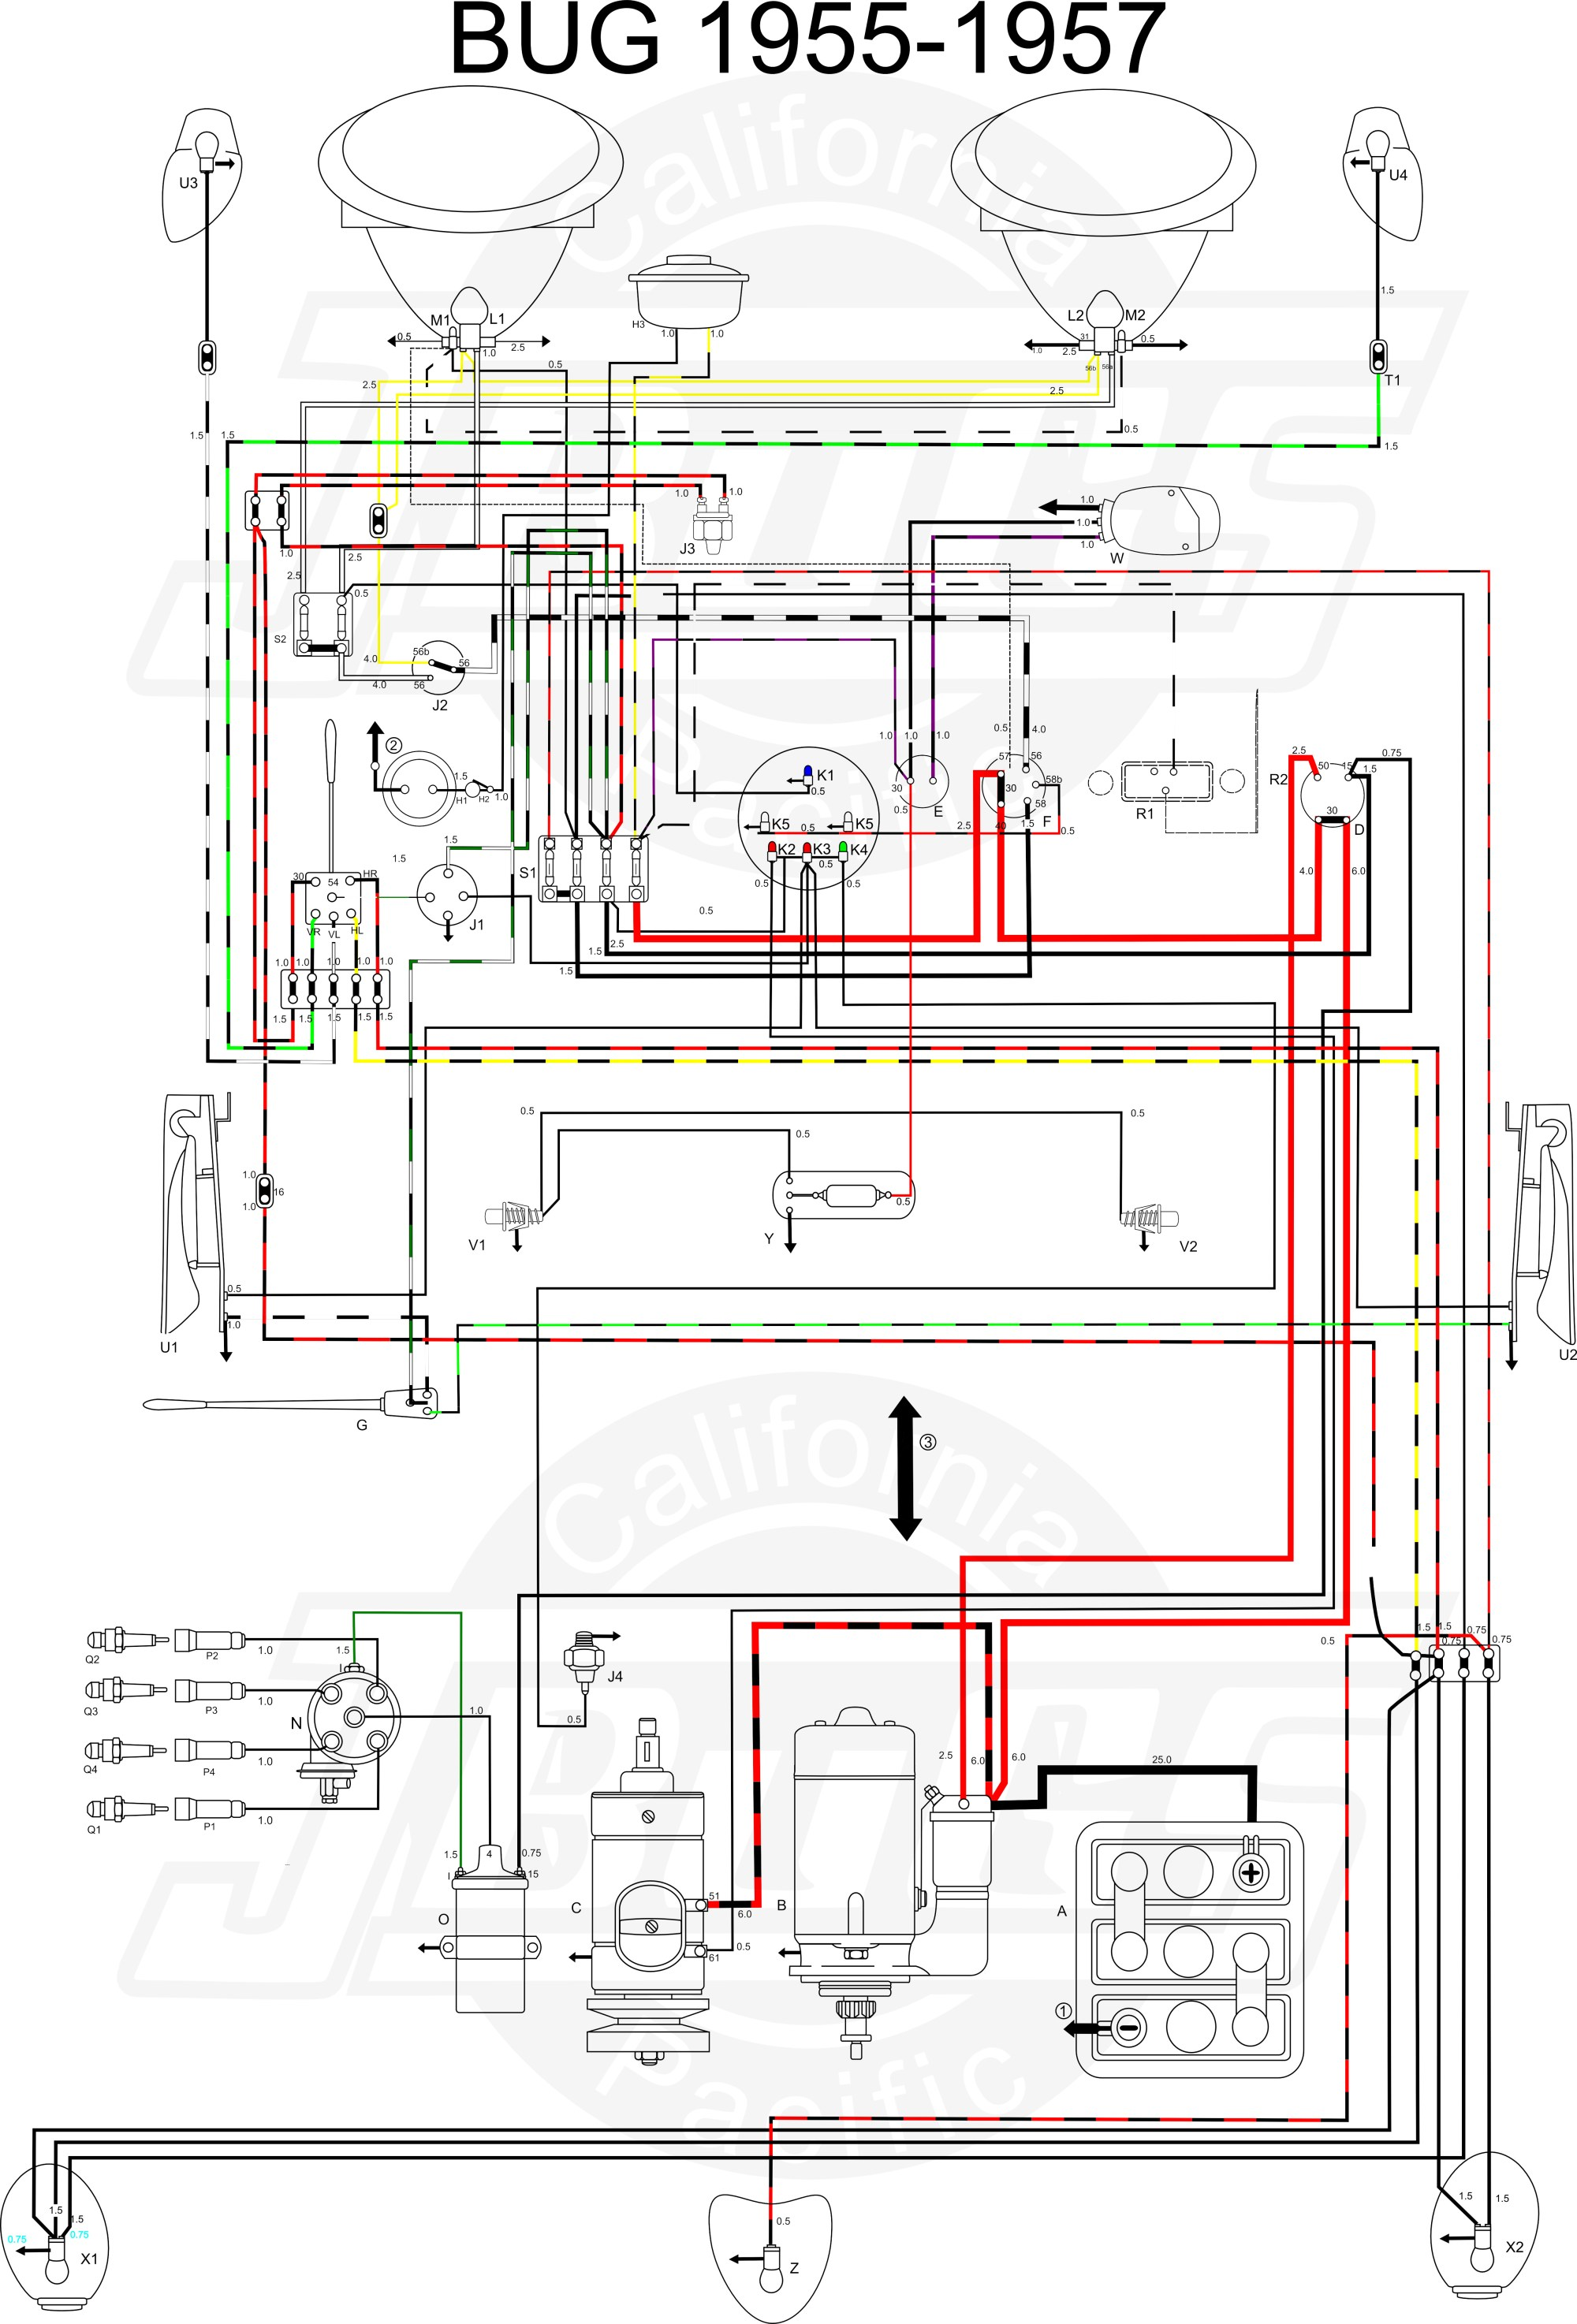 hight resolution of vw light switch wiring diagram wiring diagram 1964 vw headlight switch wiring